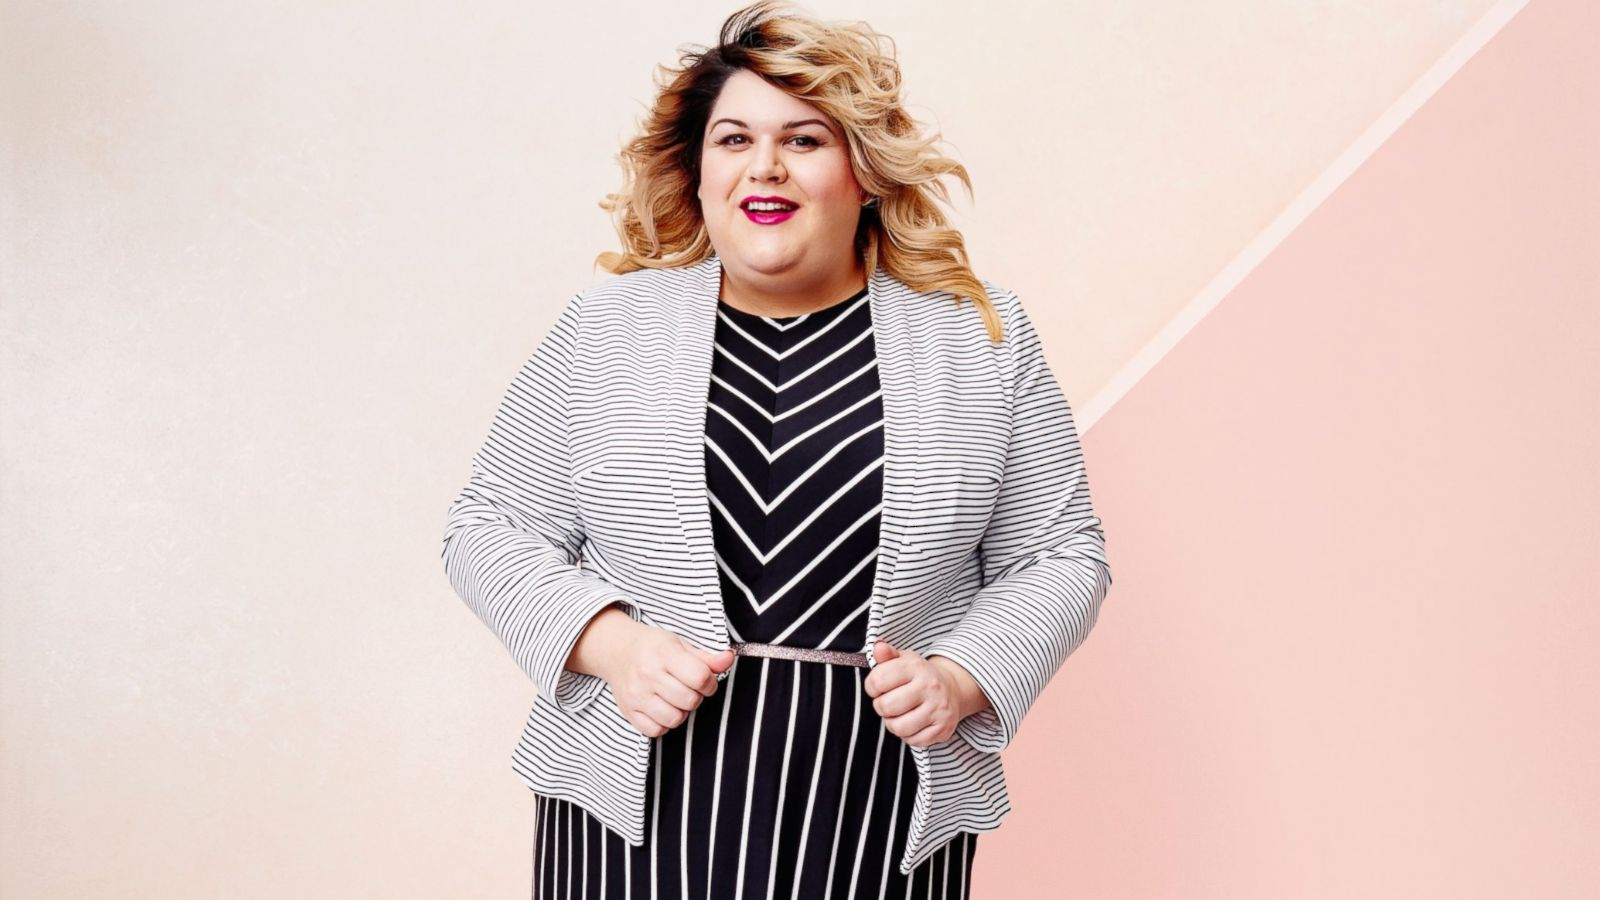 Target Launches Ava and Viv Plus-Size Clothing Line - ABC News